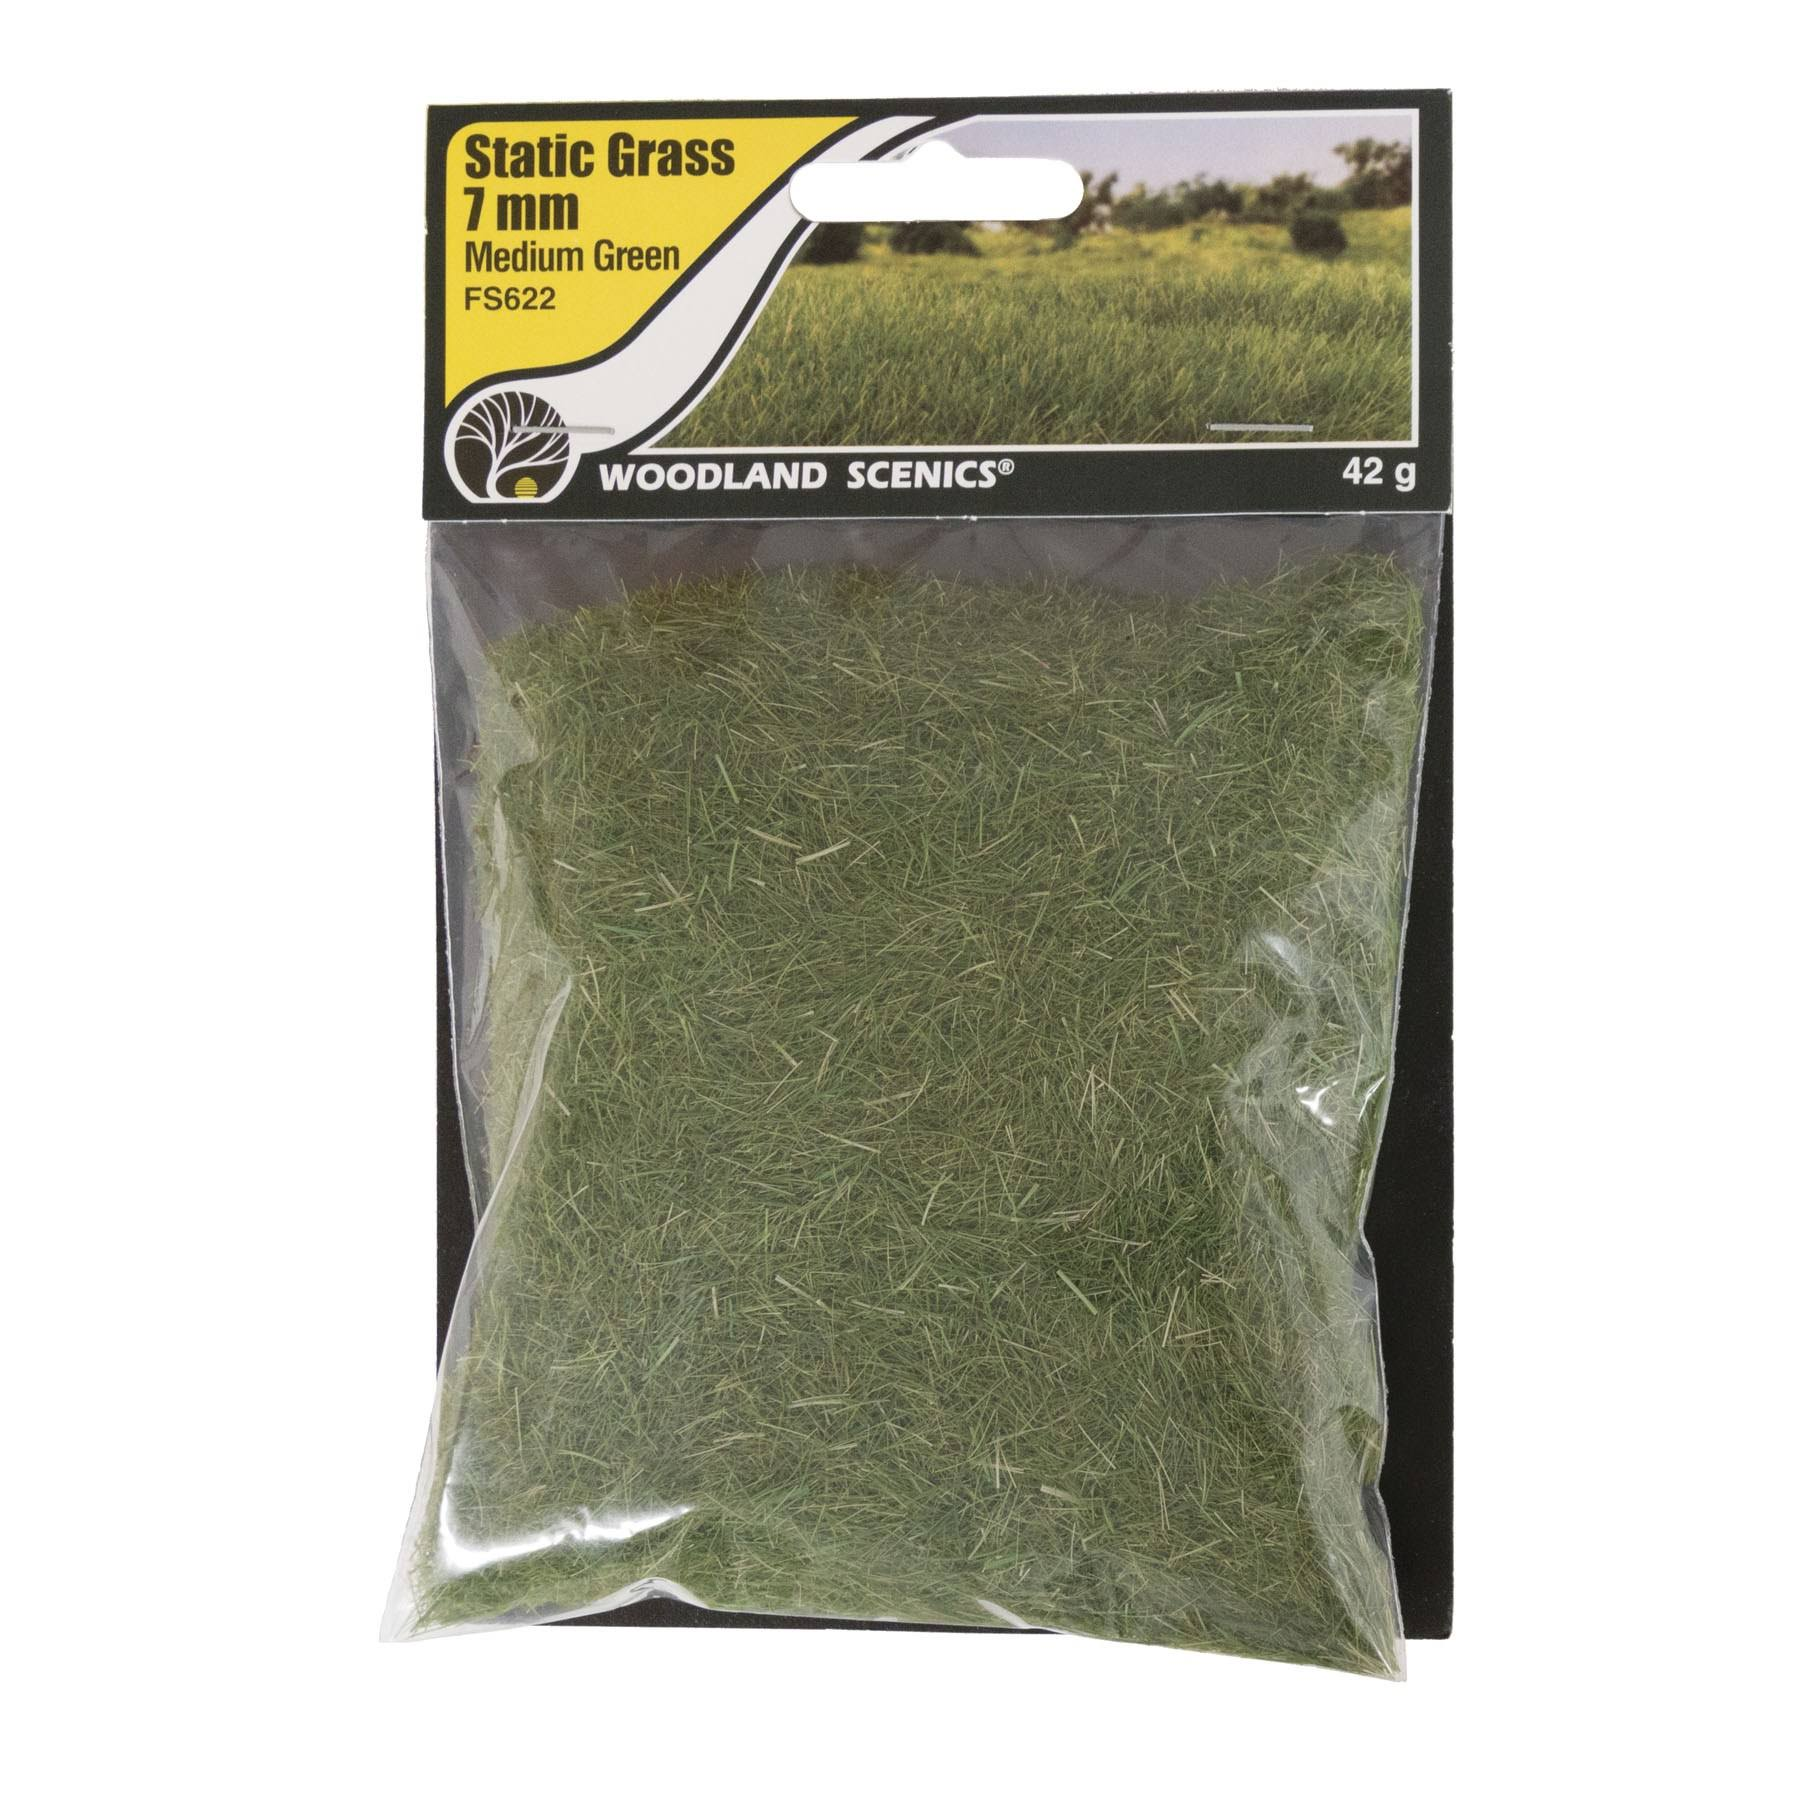 Woodland Scenics FS622 Static Grass Medium Green 7mm